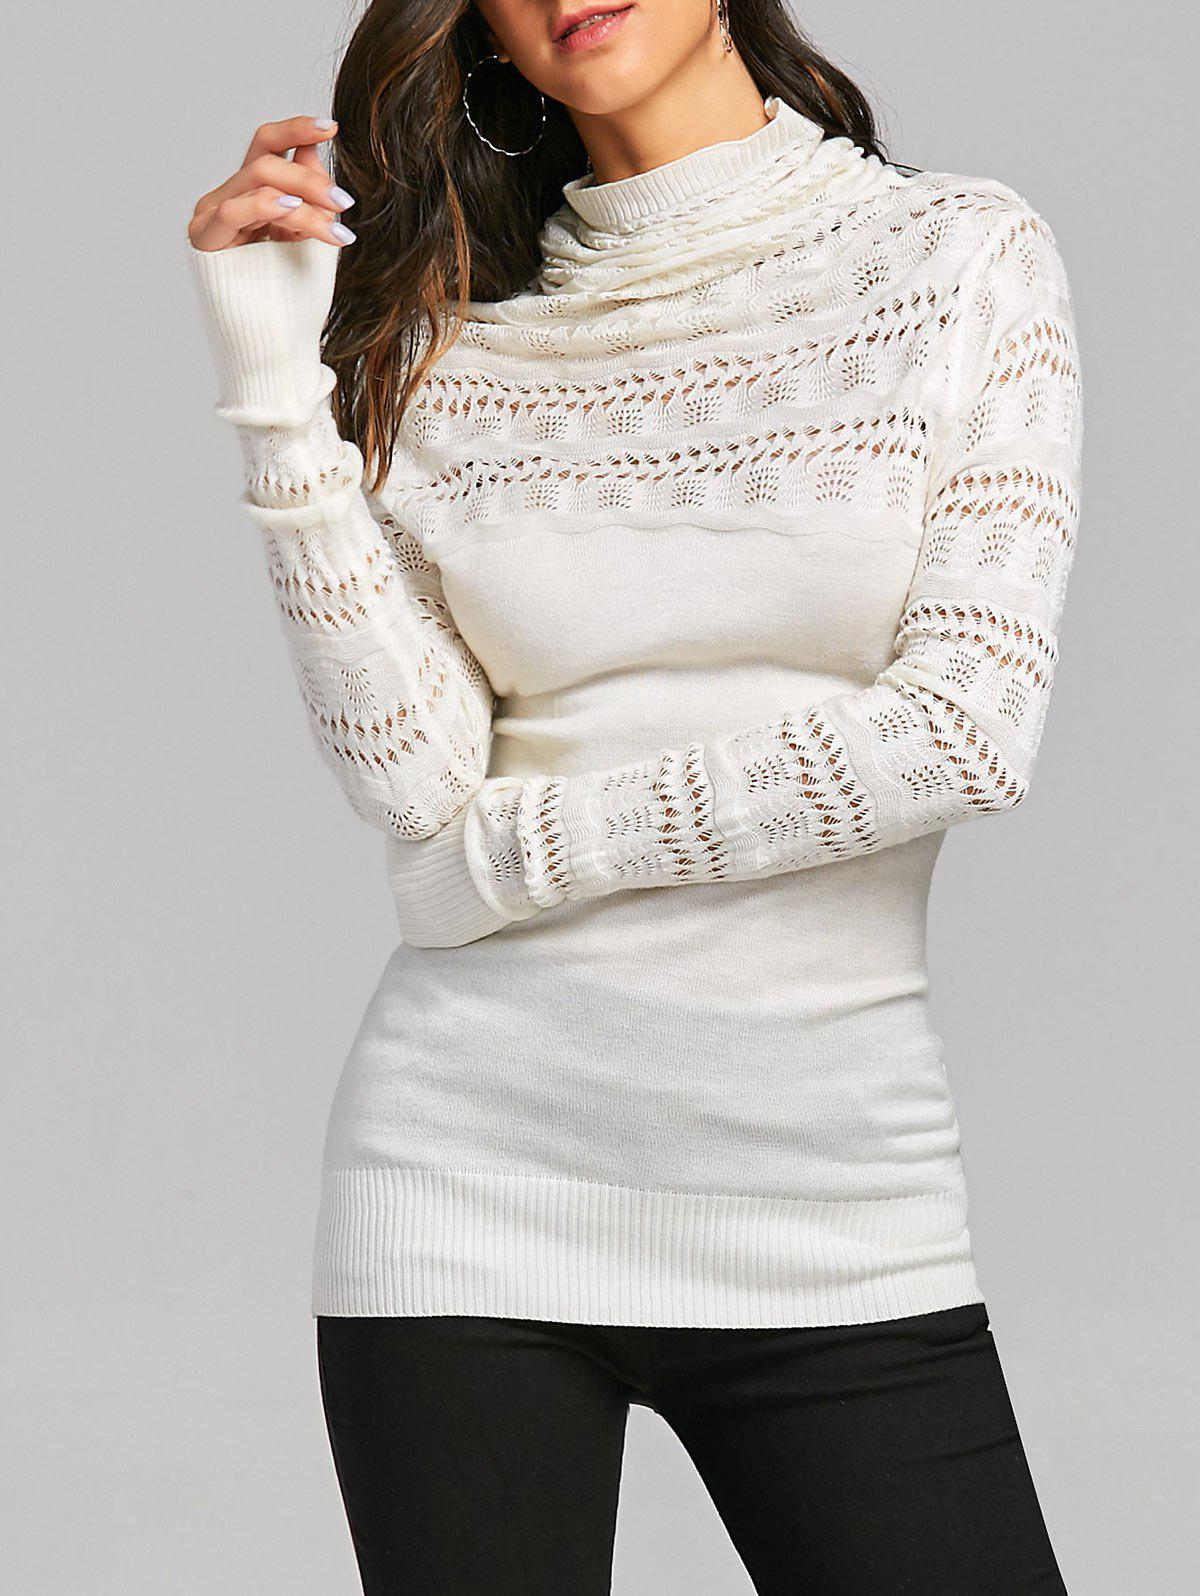 Cowl Neck Open Knitted Jumper SweaterWOMEN<br><br>Size: ONE SIZE; Color: OFF-WHITE; Type: Pullovers; Material: Acrylic,Polyester; Sleeve Length: Full; Collar: Cowl Neck; Style: Casual; Pattern Type: Solid; Embellishment: Hollow Out; Season: Fall,Spring; Weight: 0.2700kg; Package Contents: 1 x Sweater;